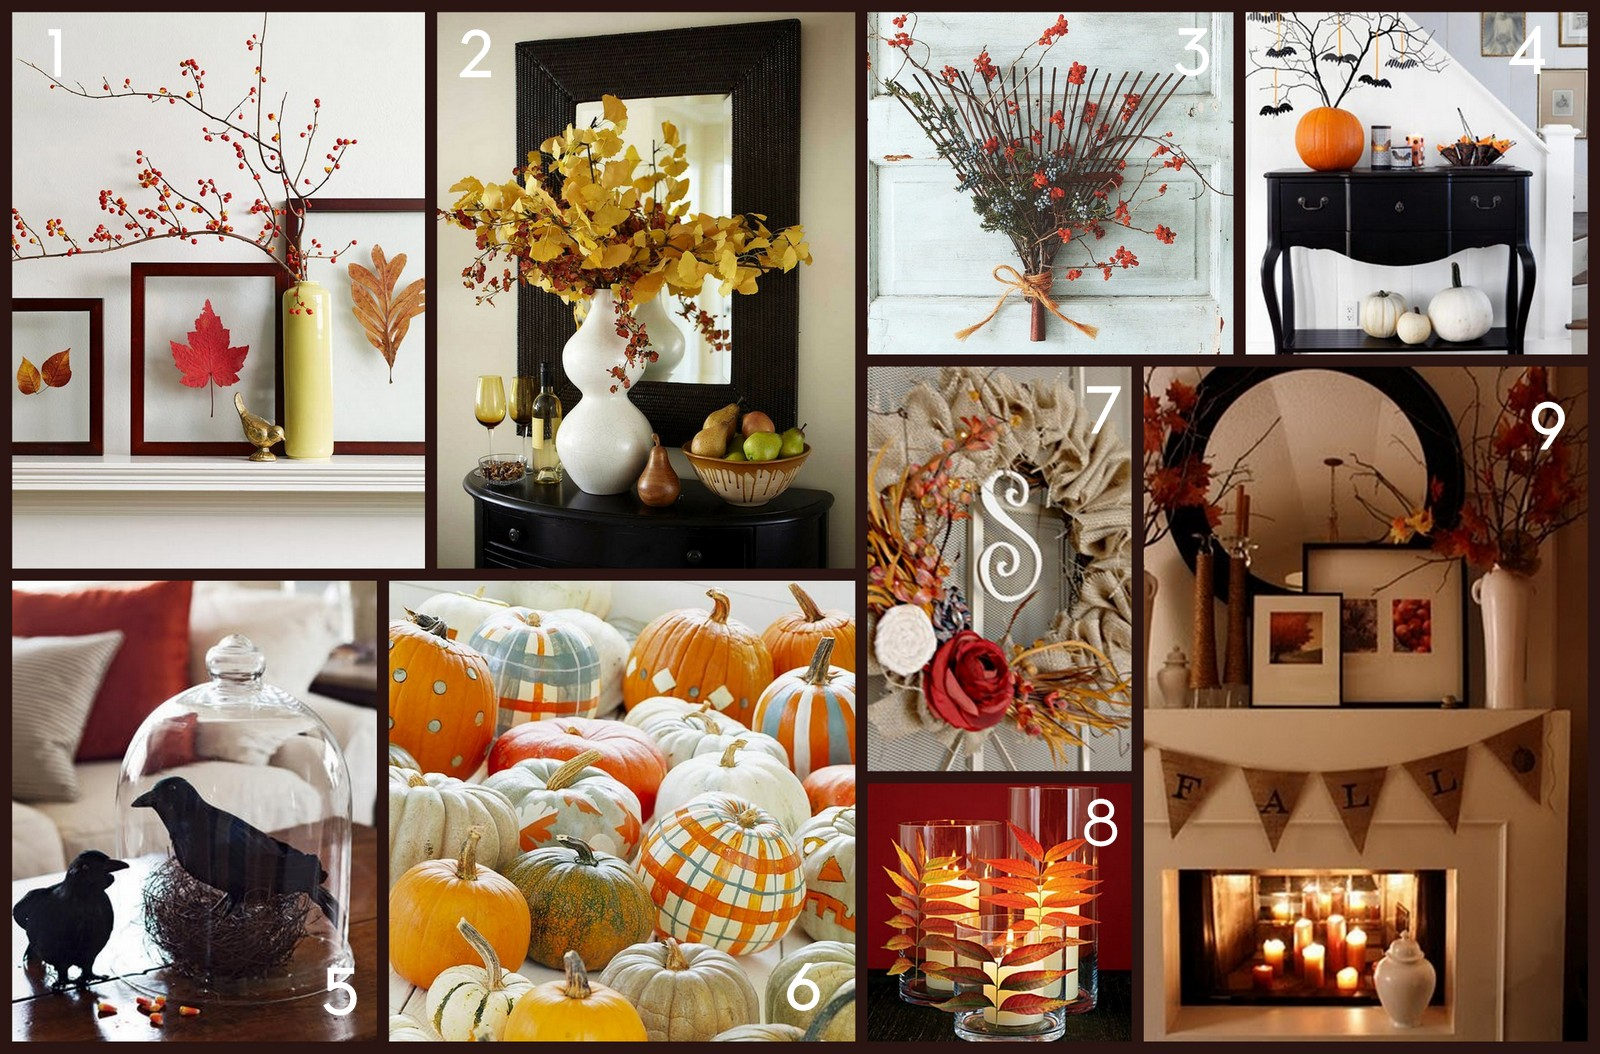 Home made modern pinterest easy fall decorating ideas for Homemade fall decorations for home